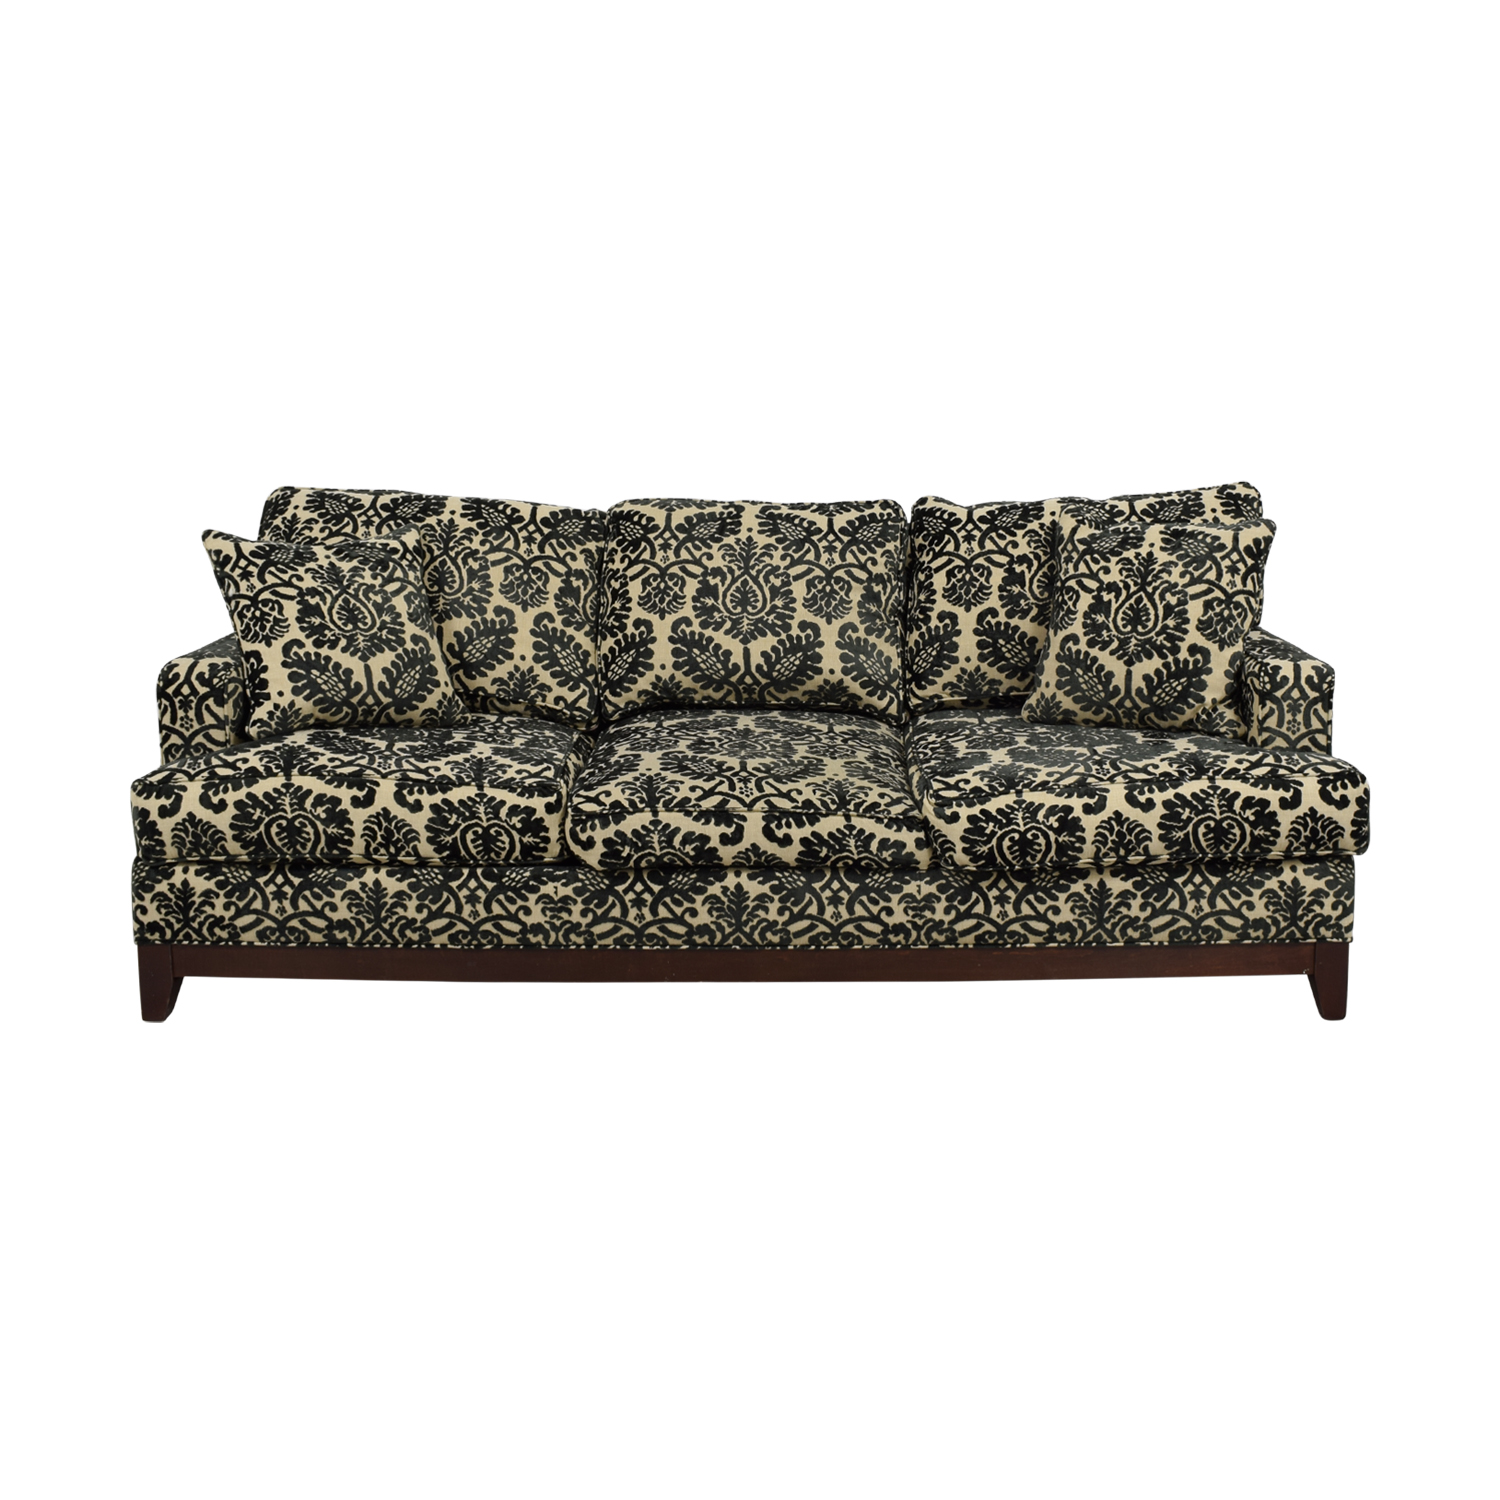 Ethan Allen Arcata Black and Beige Three-Cushion Sofa / Classic Sofas